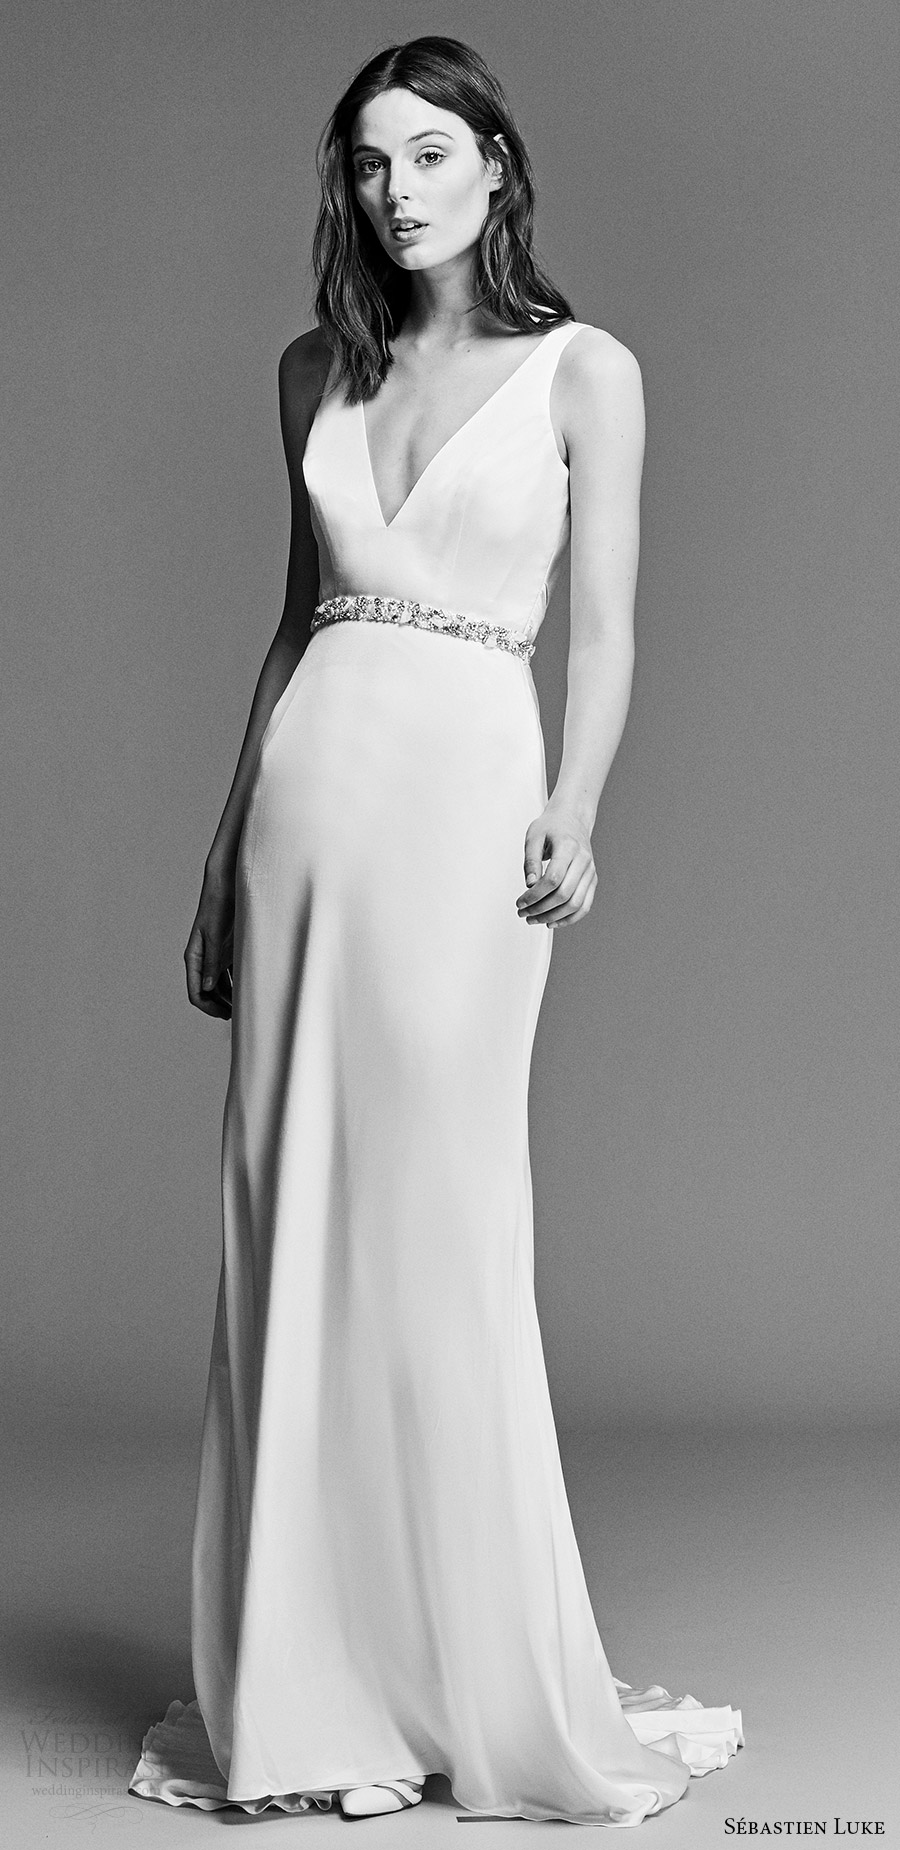 sebastien luke spring 2018 bridal sleeveless v neck clean sheath wedding dress (18b14b) mv short train modern chic